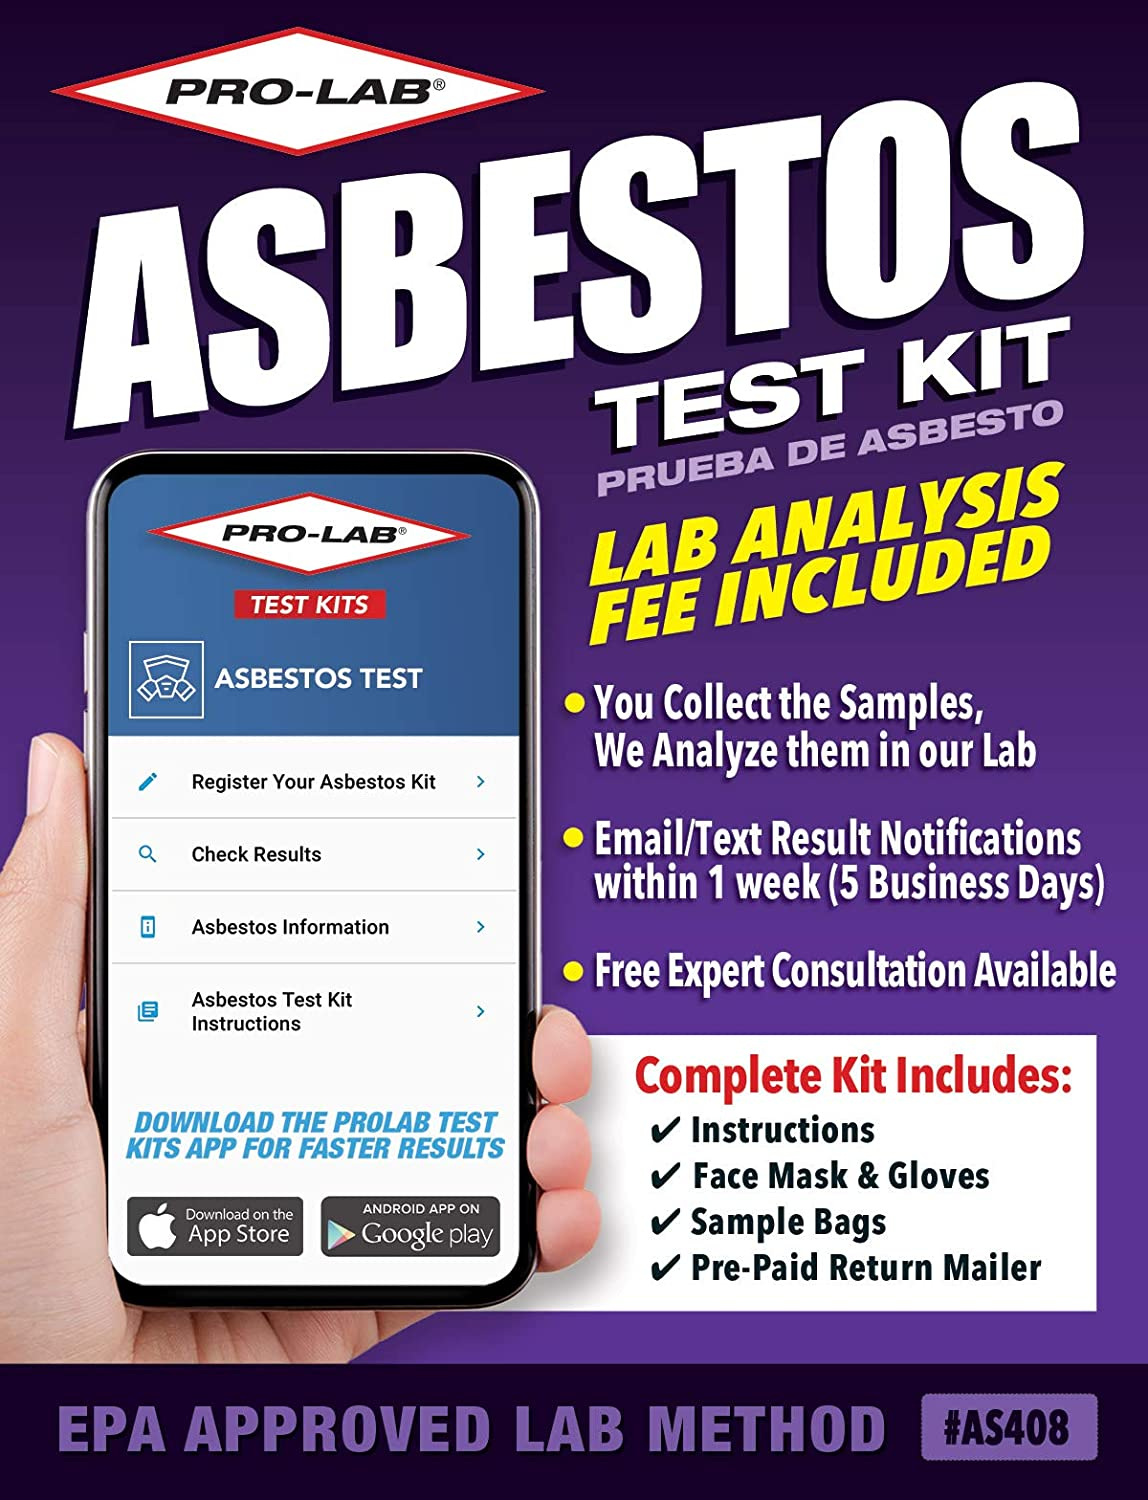 ProLab Asbestos Test Kit Lab Fee Included Emailed Results Within Week Includes Return Mailer, 1.6 Ounce